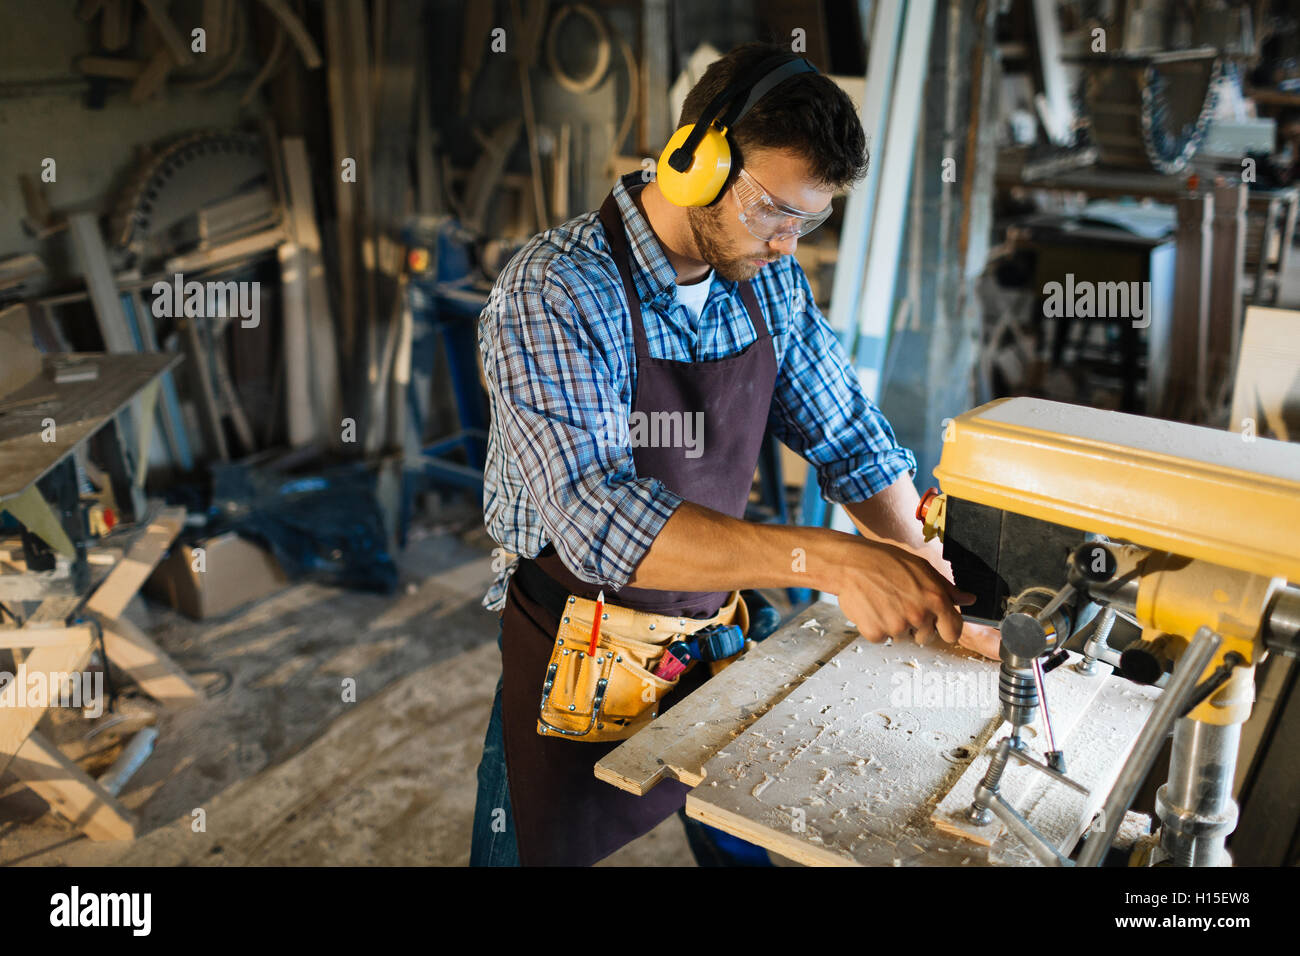 Woodworking - Stock Image